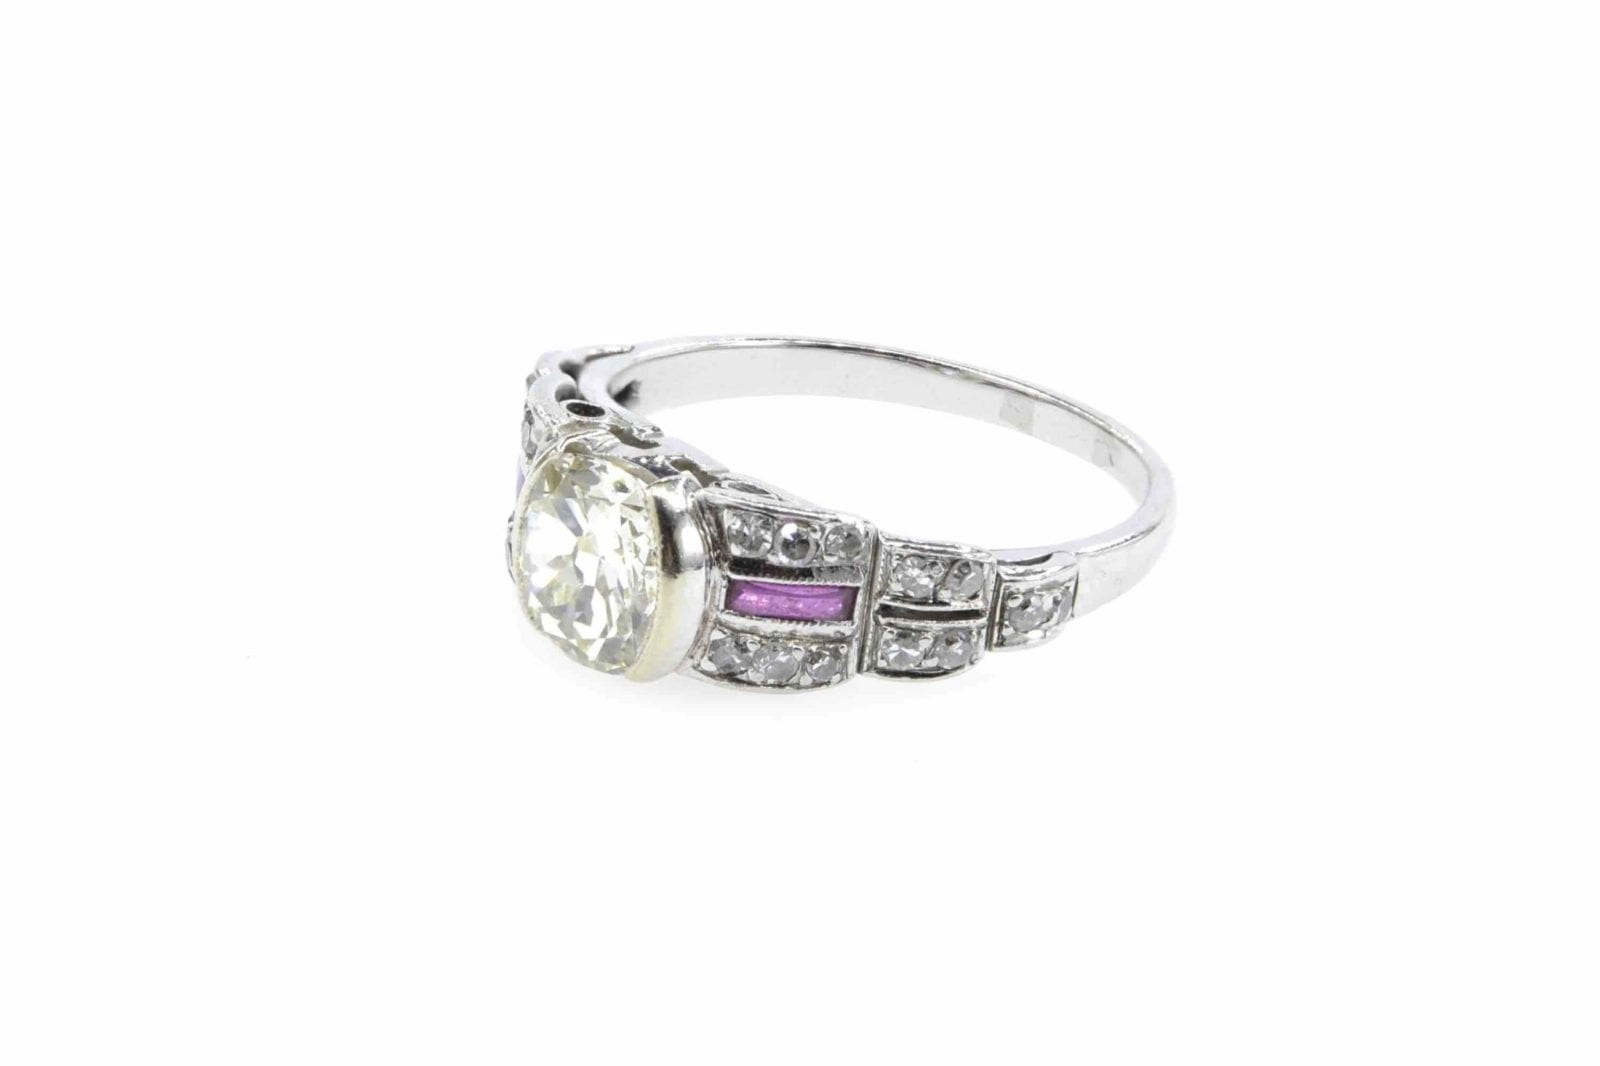 Bague diamants rubis